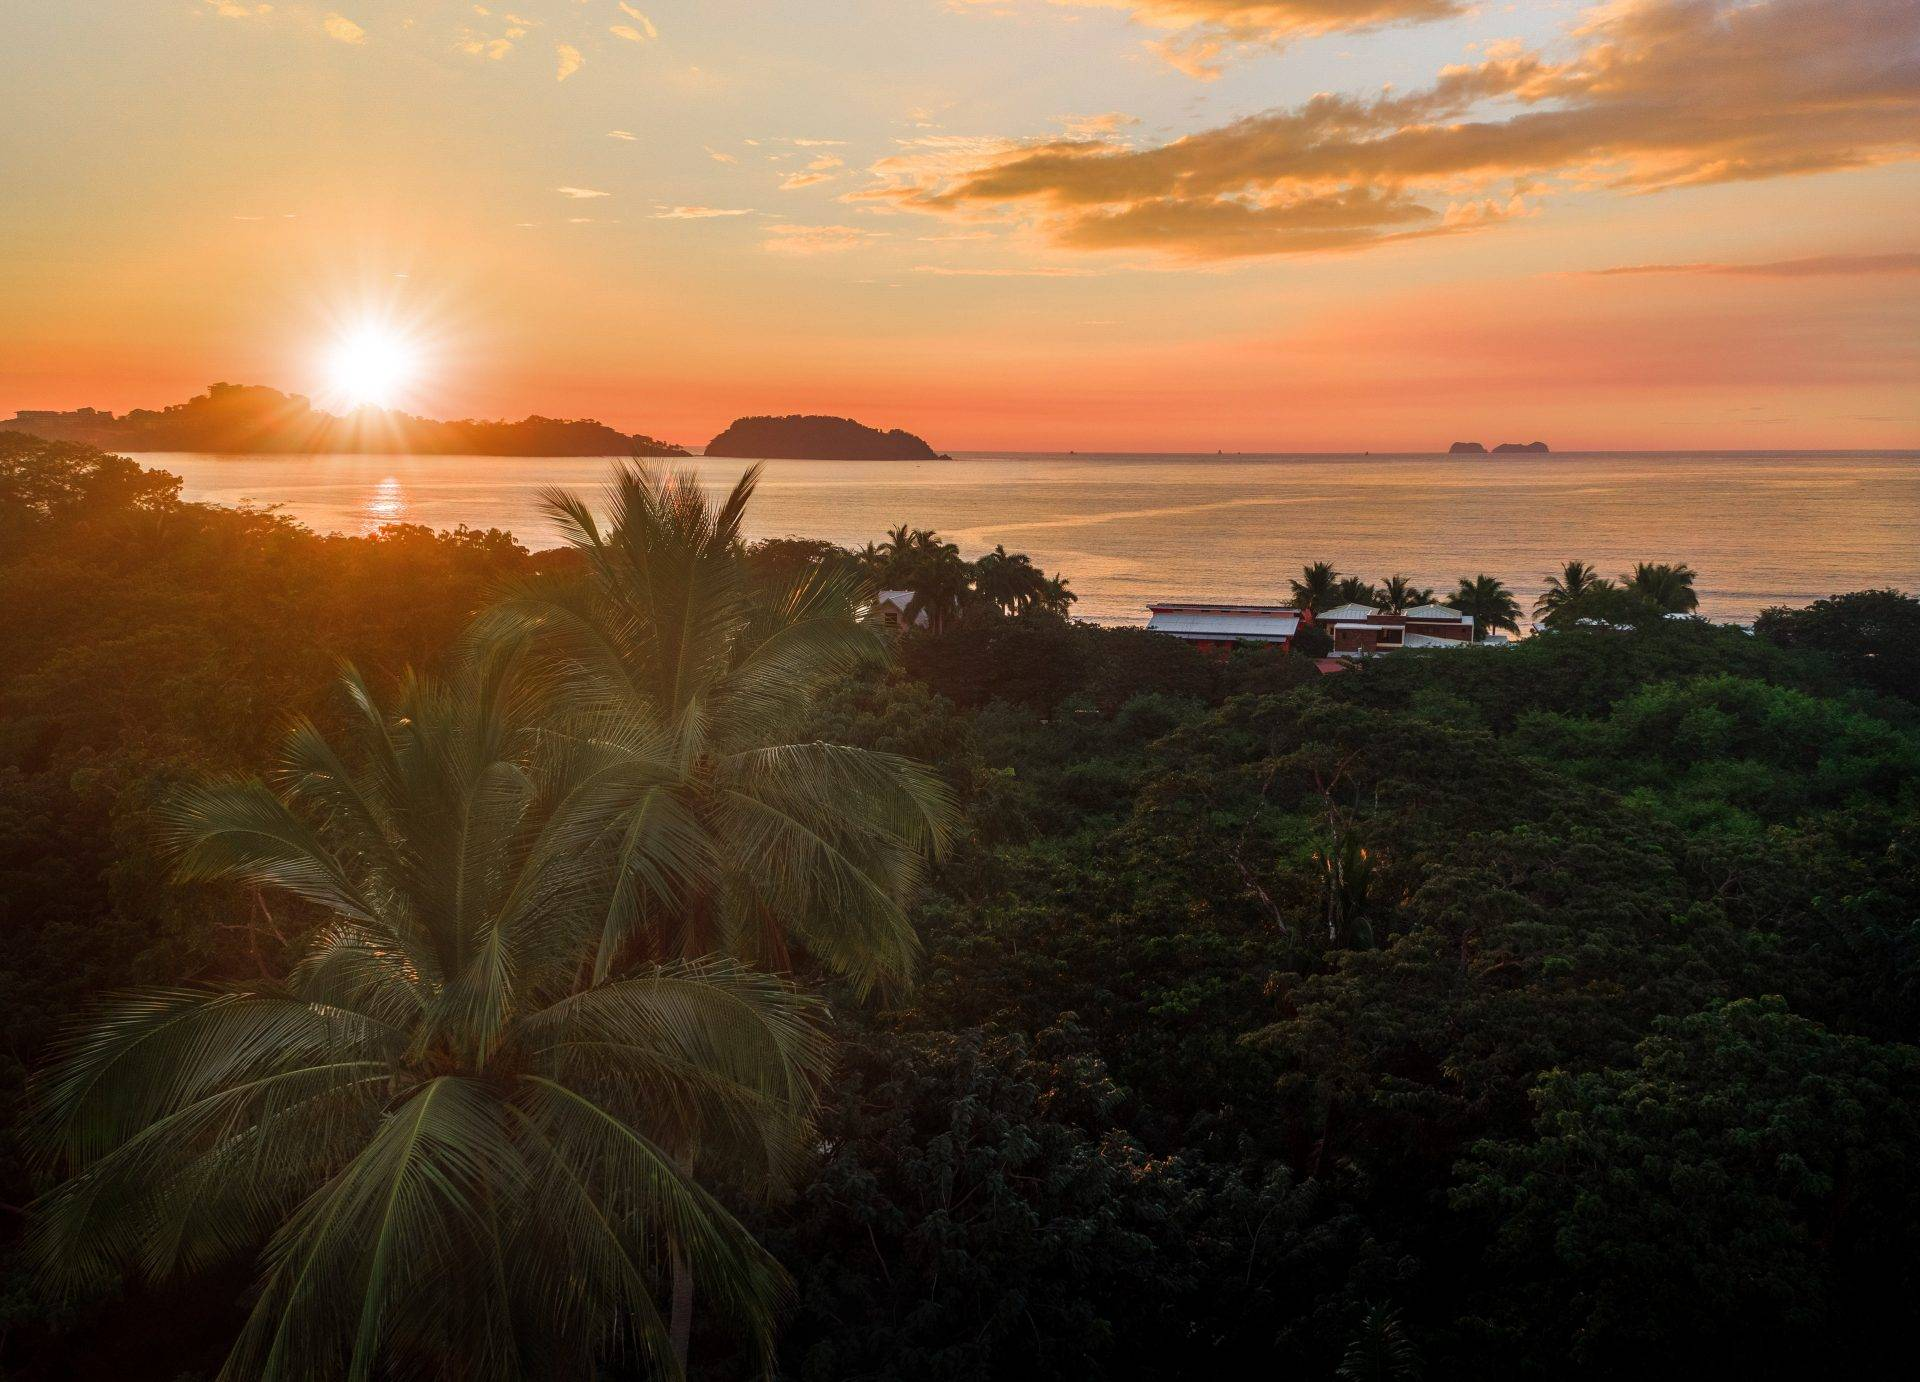 scenic beauty among top reasons for moving to Costa Rica